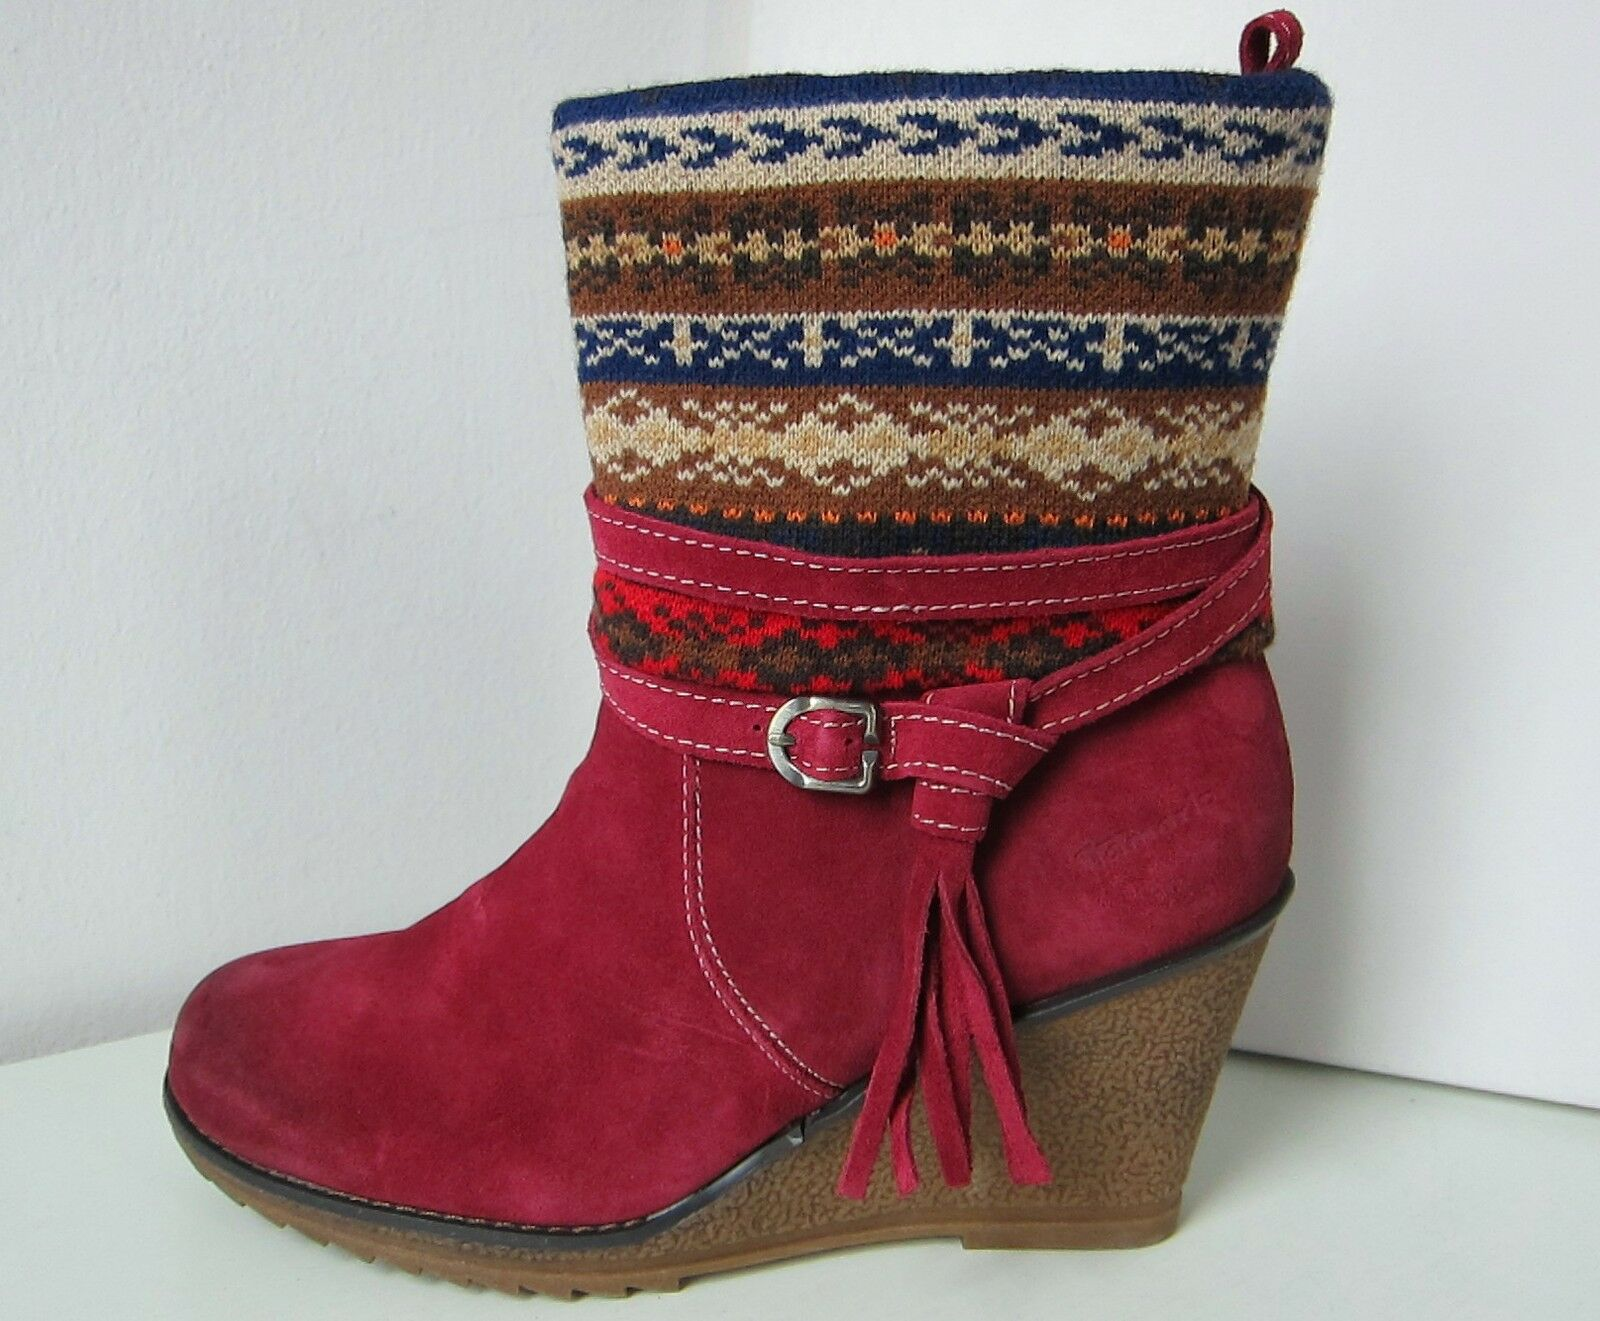 Tamaris Kailabsatz Stiefelette merlot rot Gr. 39 bootee ROT Stiefel Fragaria